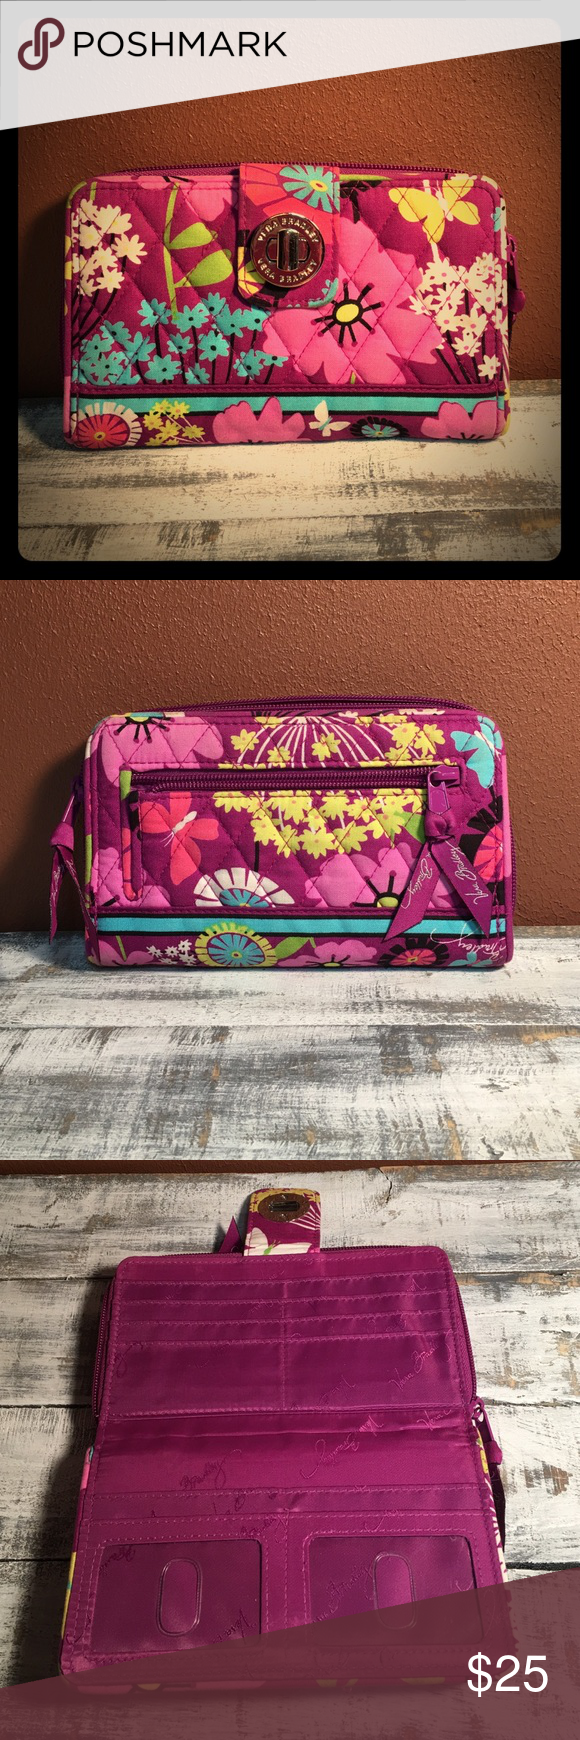 Vera Bradley Turn Lock Wrap Around Zipper Wallet This item is in like new condition. It does have one very small spot on it ( to the top left of the lock) Please see photos. Everything else about this wallet is in awesome shape!!!! Vera Bradley Bags Wallets